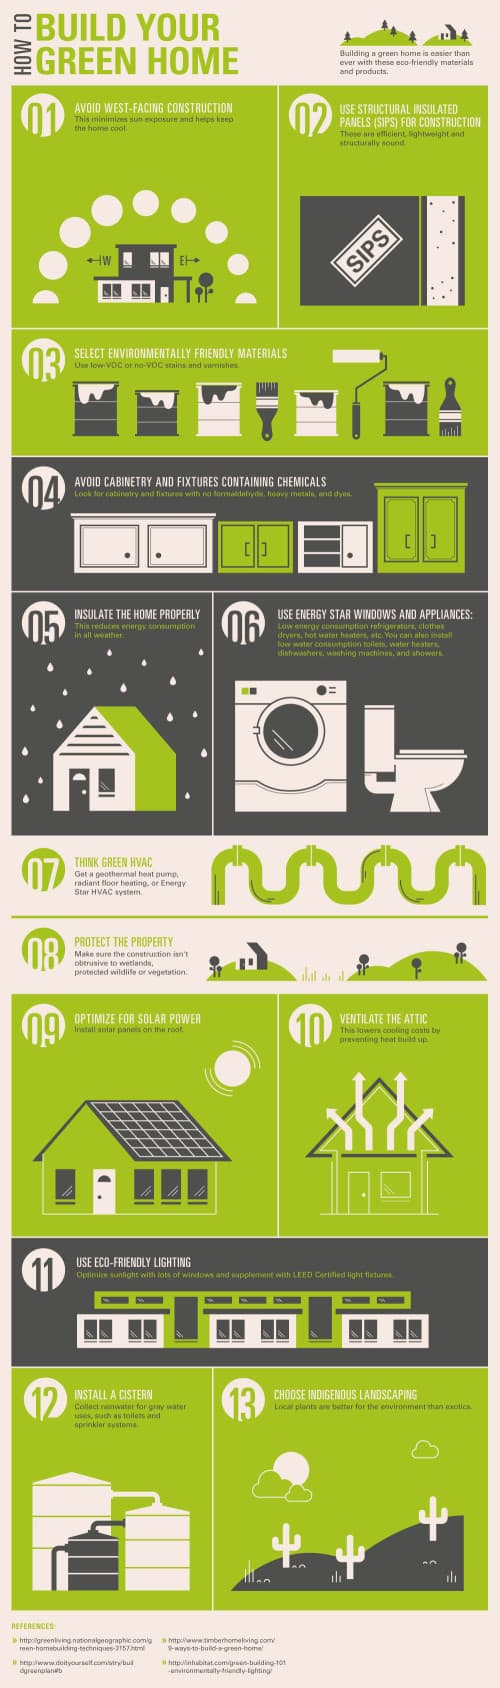 13 tips for building a green home infographic green living - Tips for building a new home ...